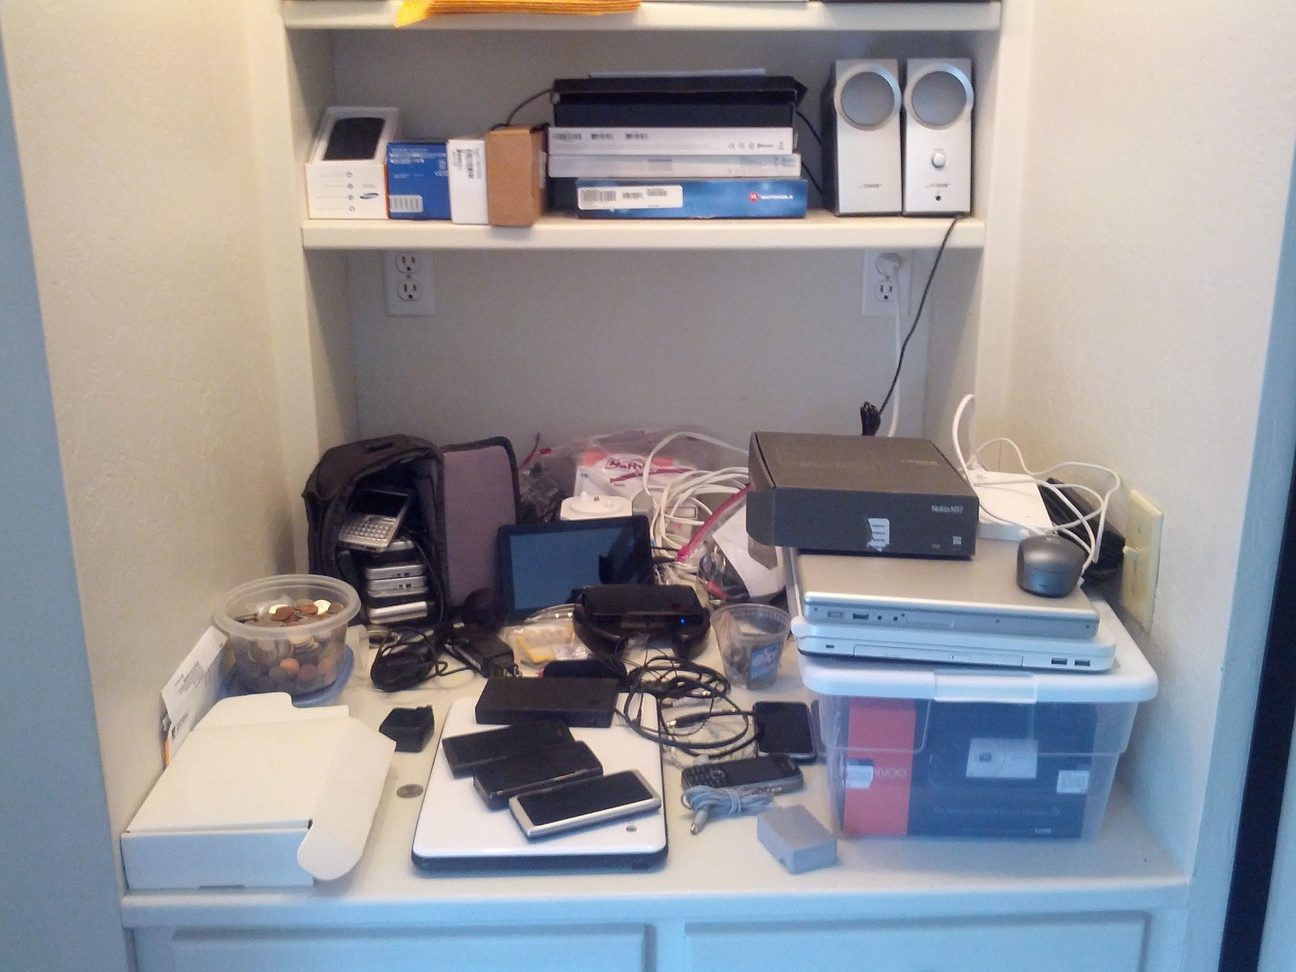 Russel Beattie's gadget collection